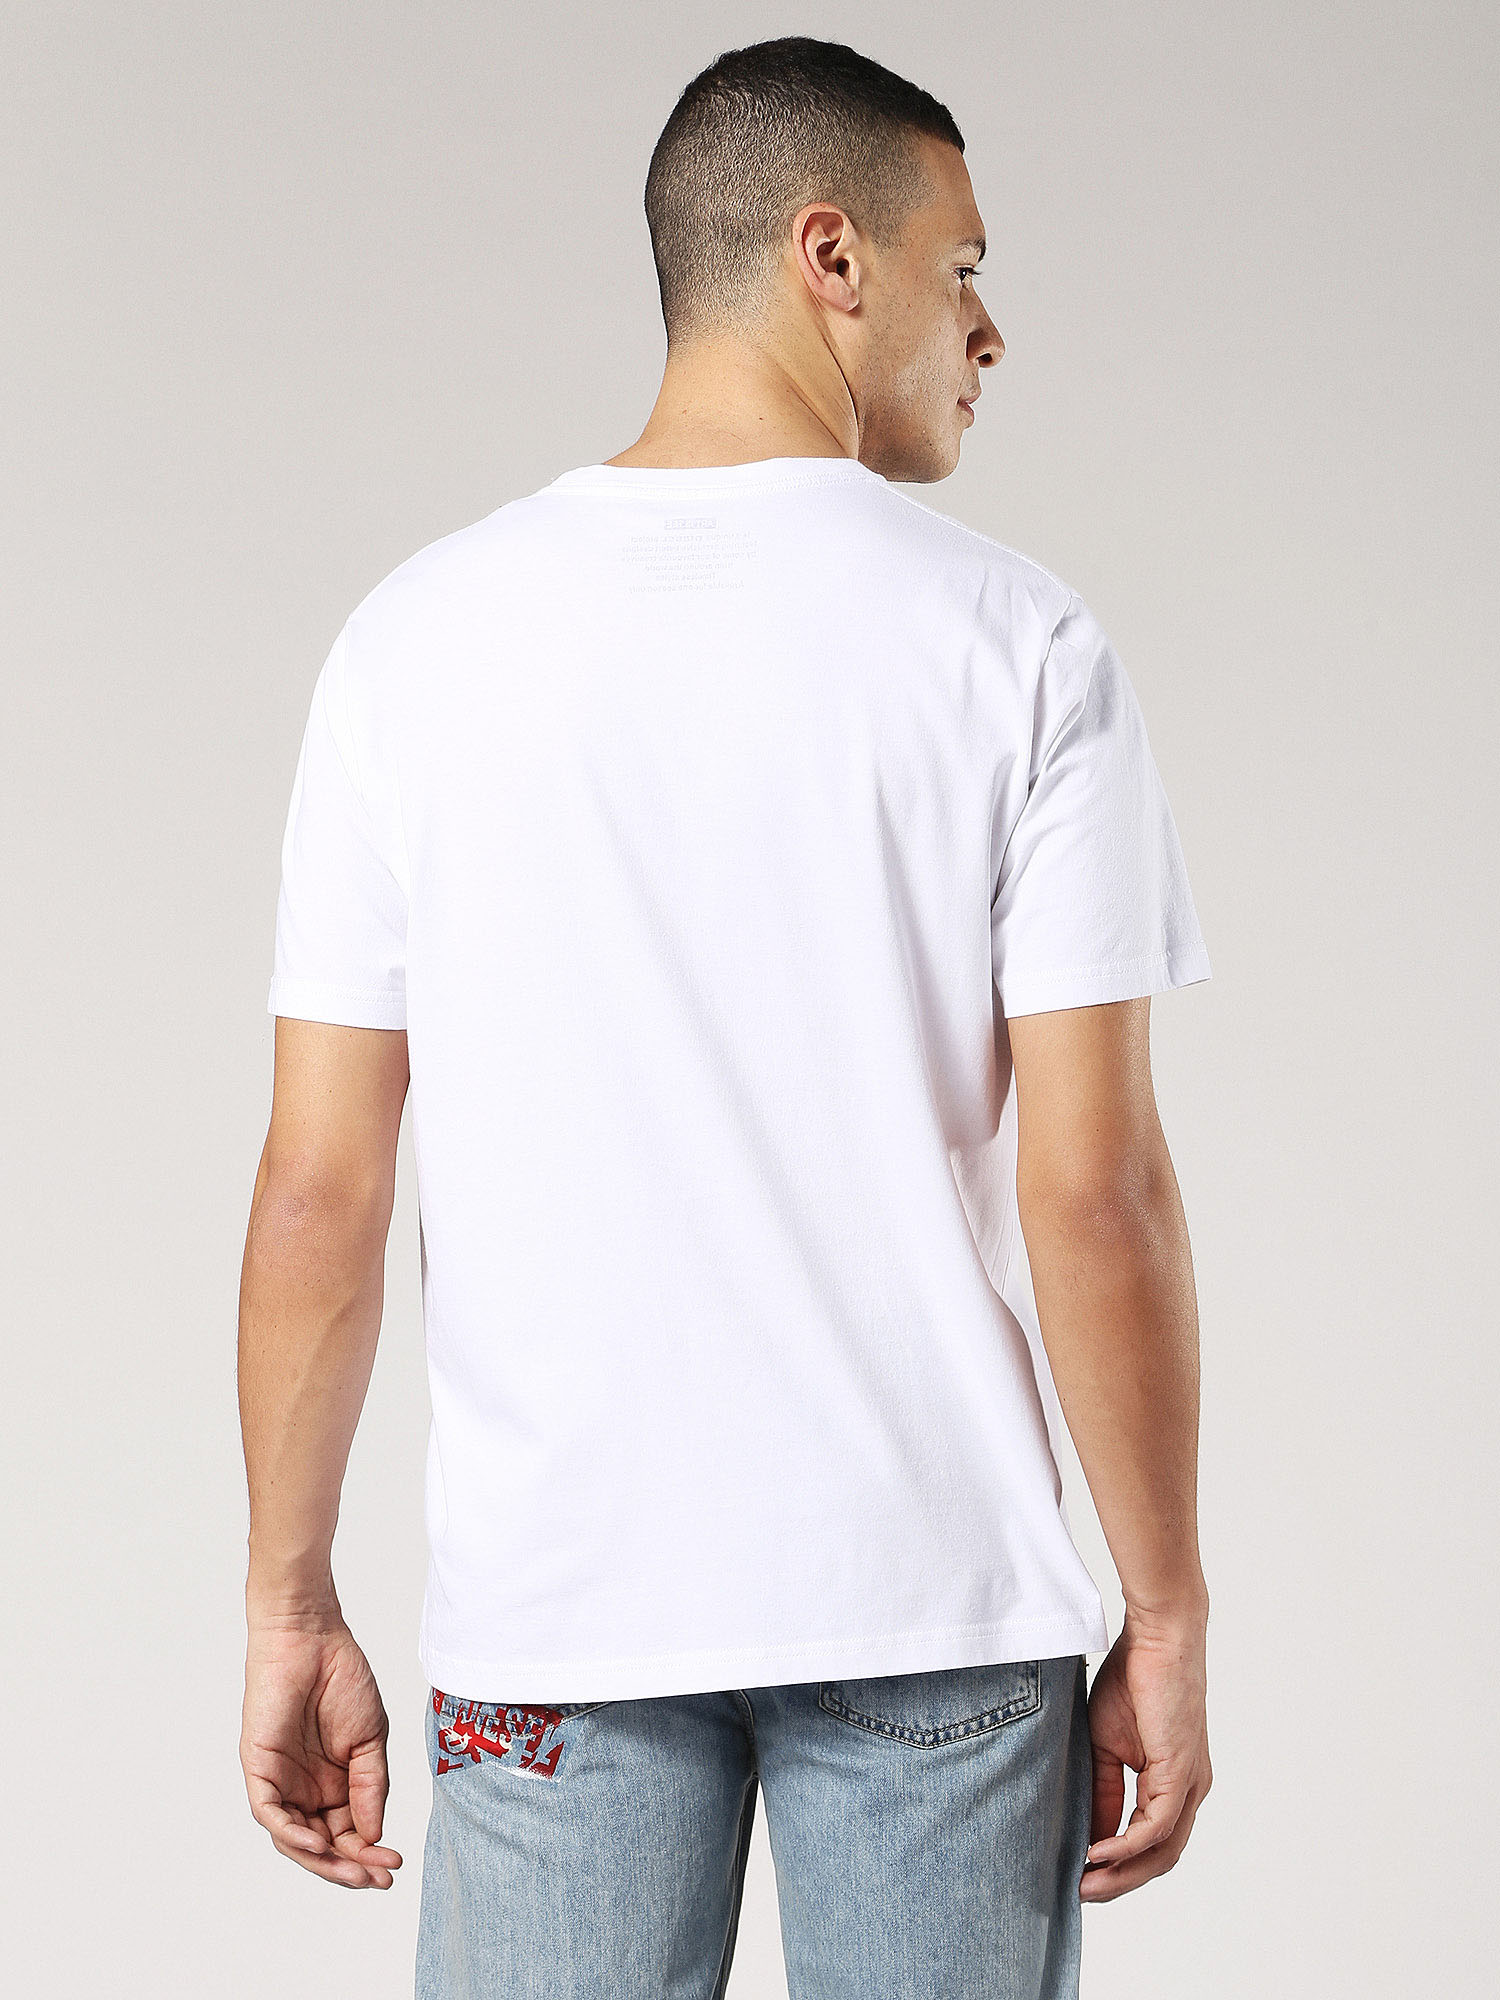 Diesel - T-JUST-SO,  - T-Shirts - Image 2